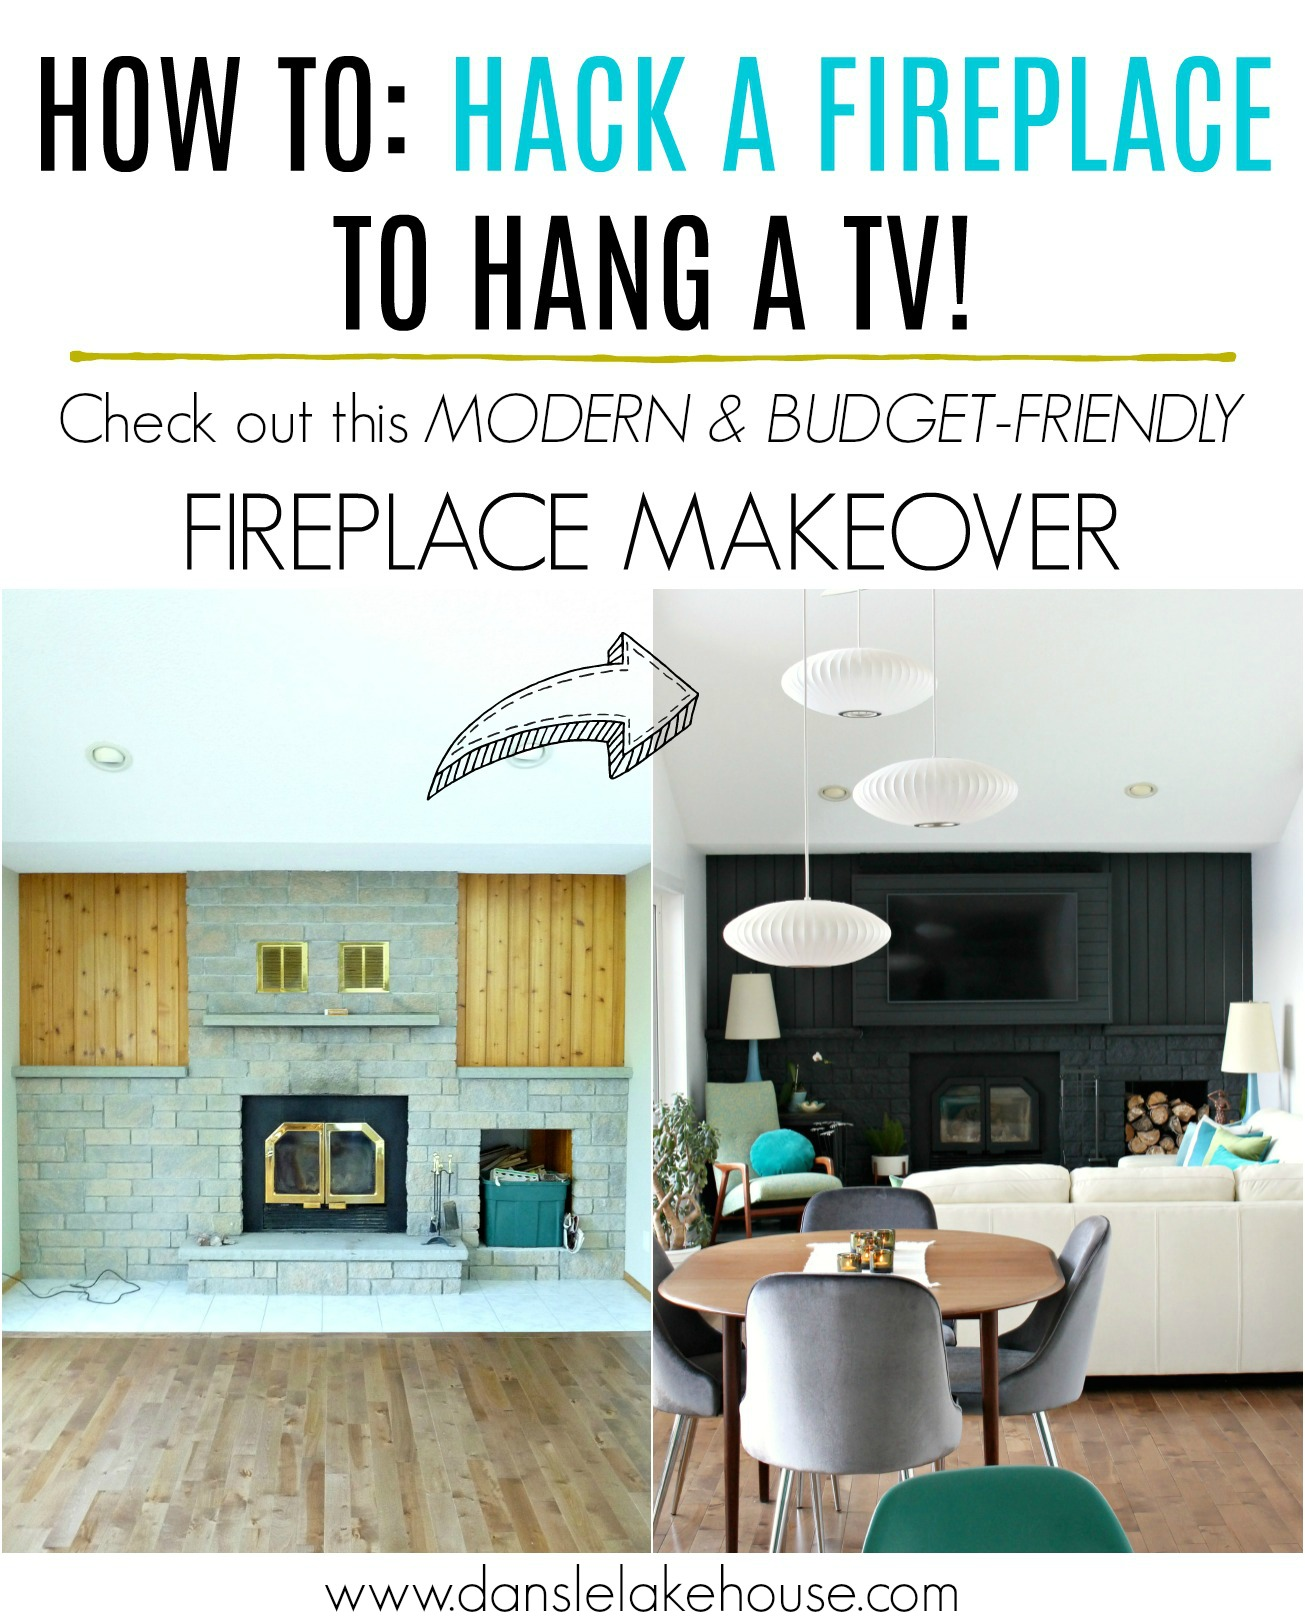 How to Build a Fireplace Bump Out to Hang a TV | DIY Fireplace Hack #fireplace #renovating #TVabovefireplace